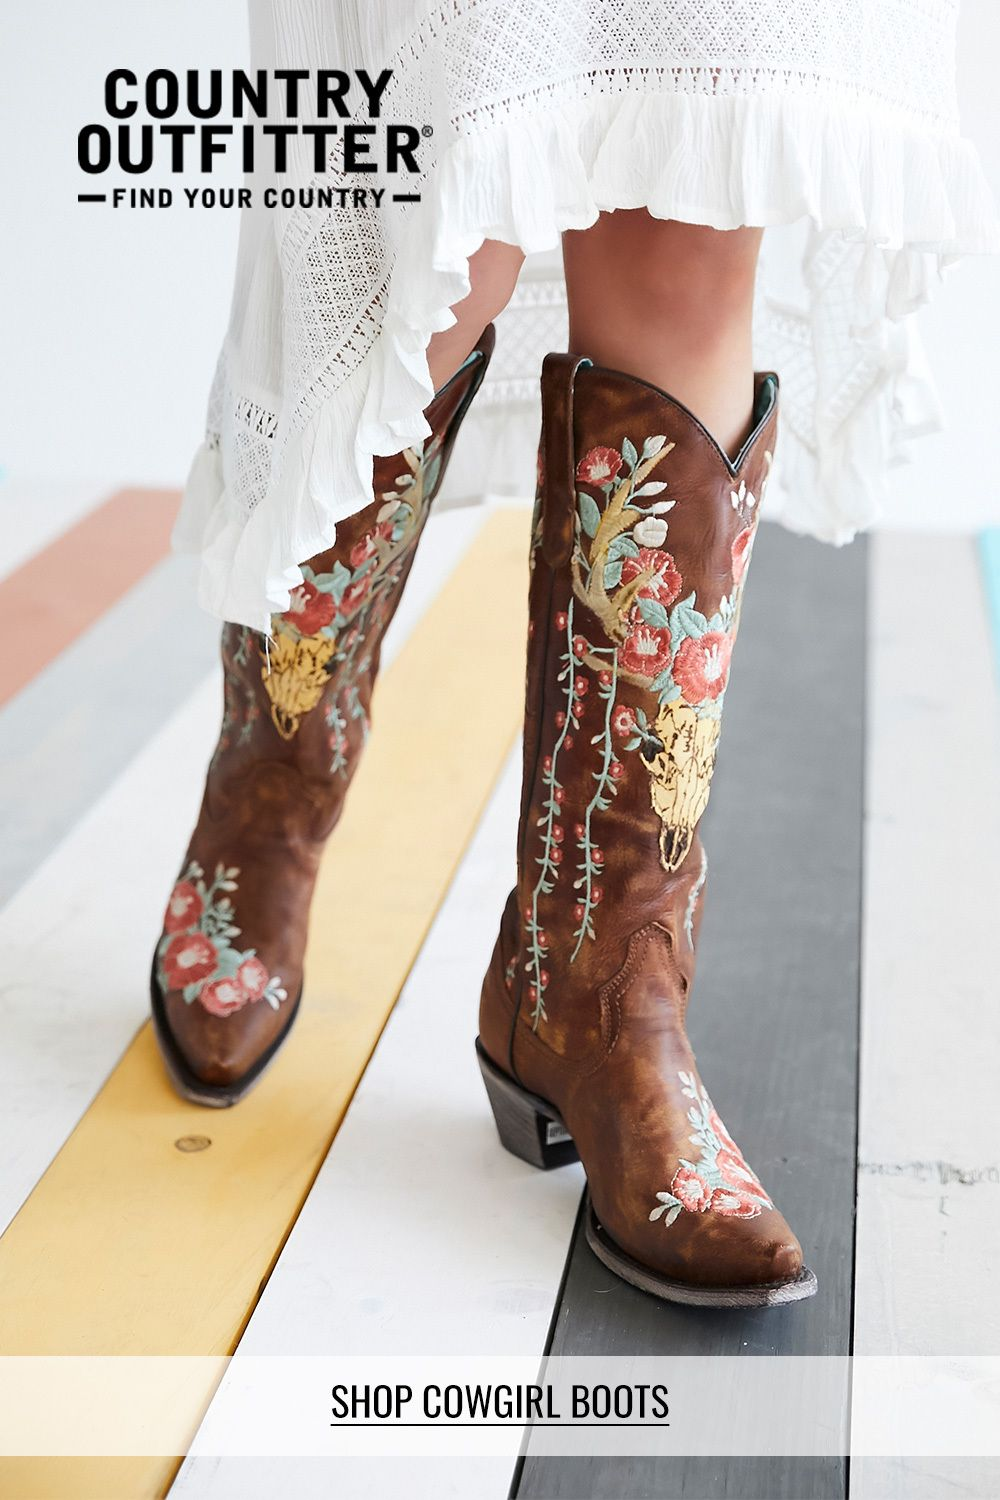 Country Outfitter carries cowgirl boots 3cfb0c2eb